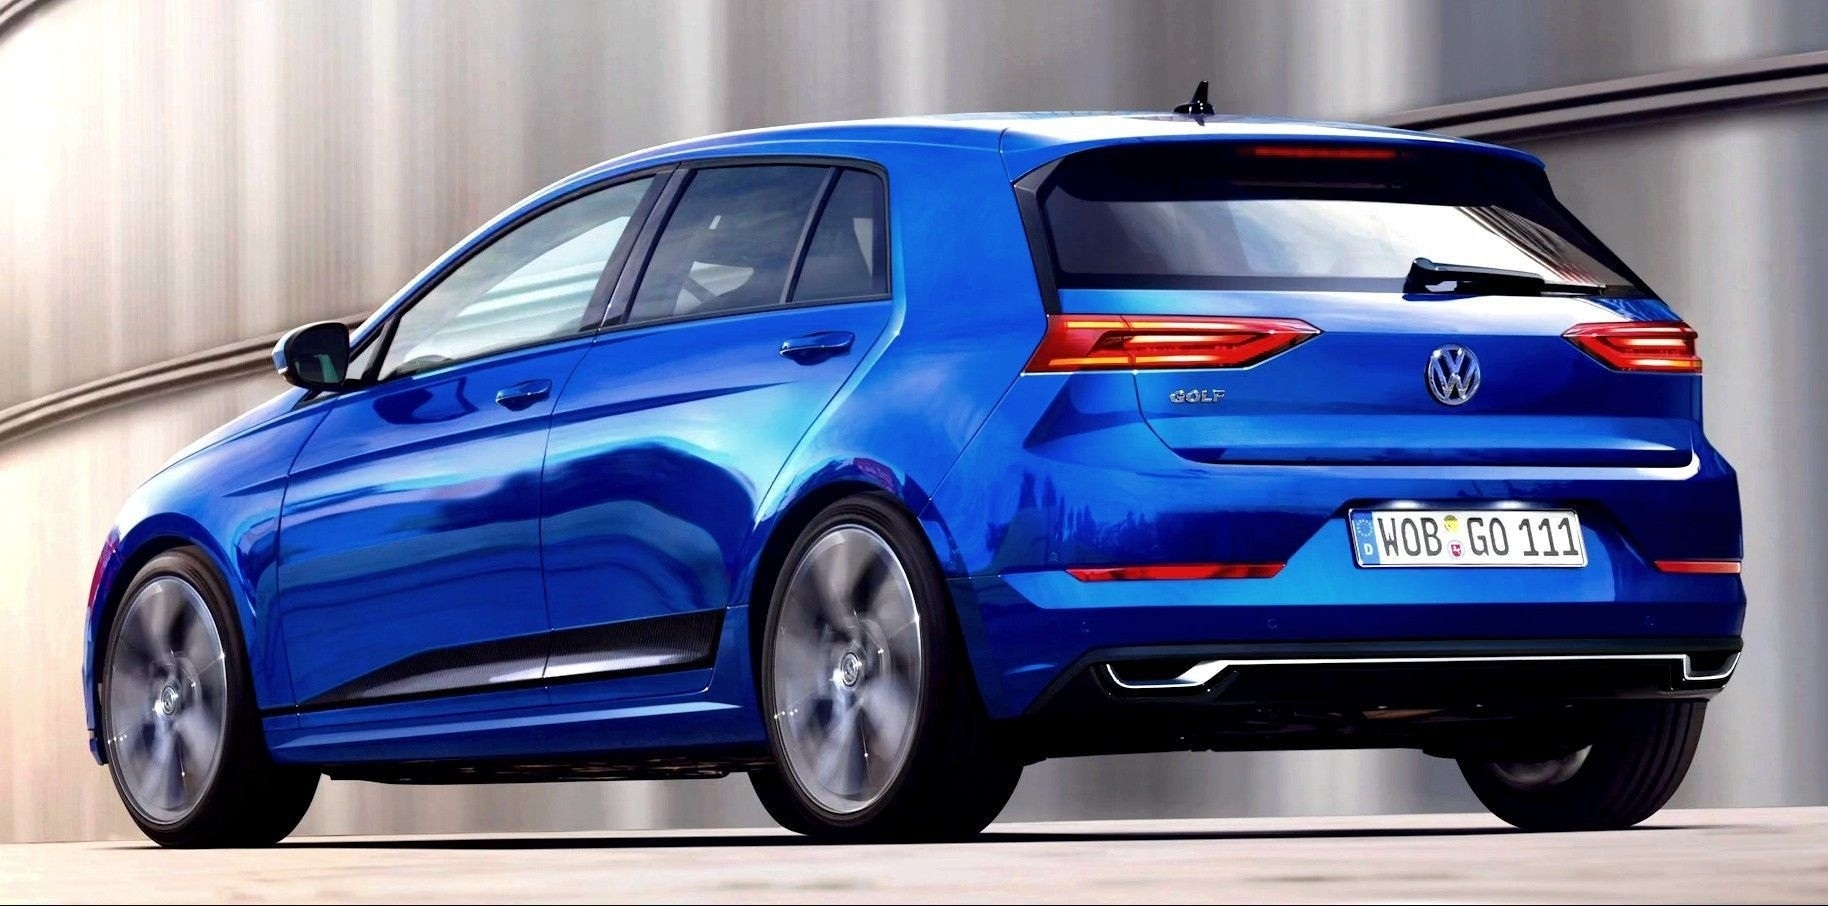 40 New 2020 Volkswagen Golf GTD Review